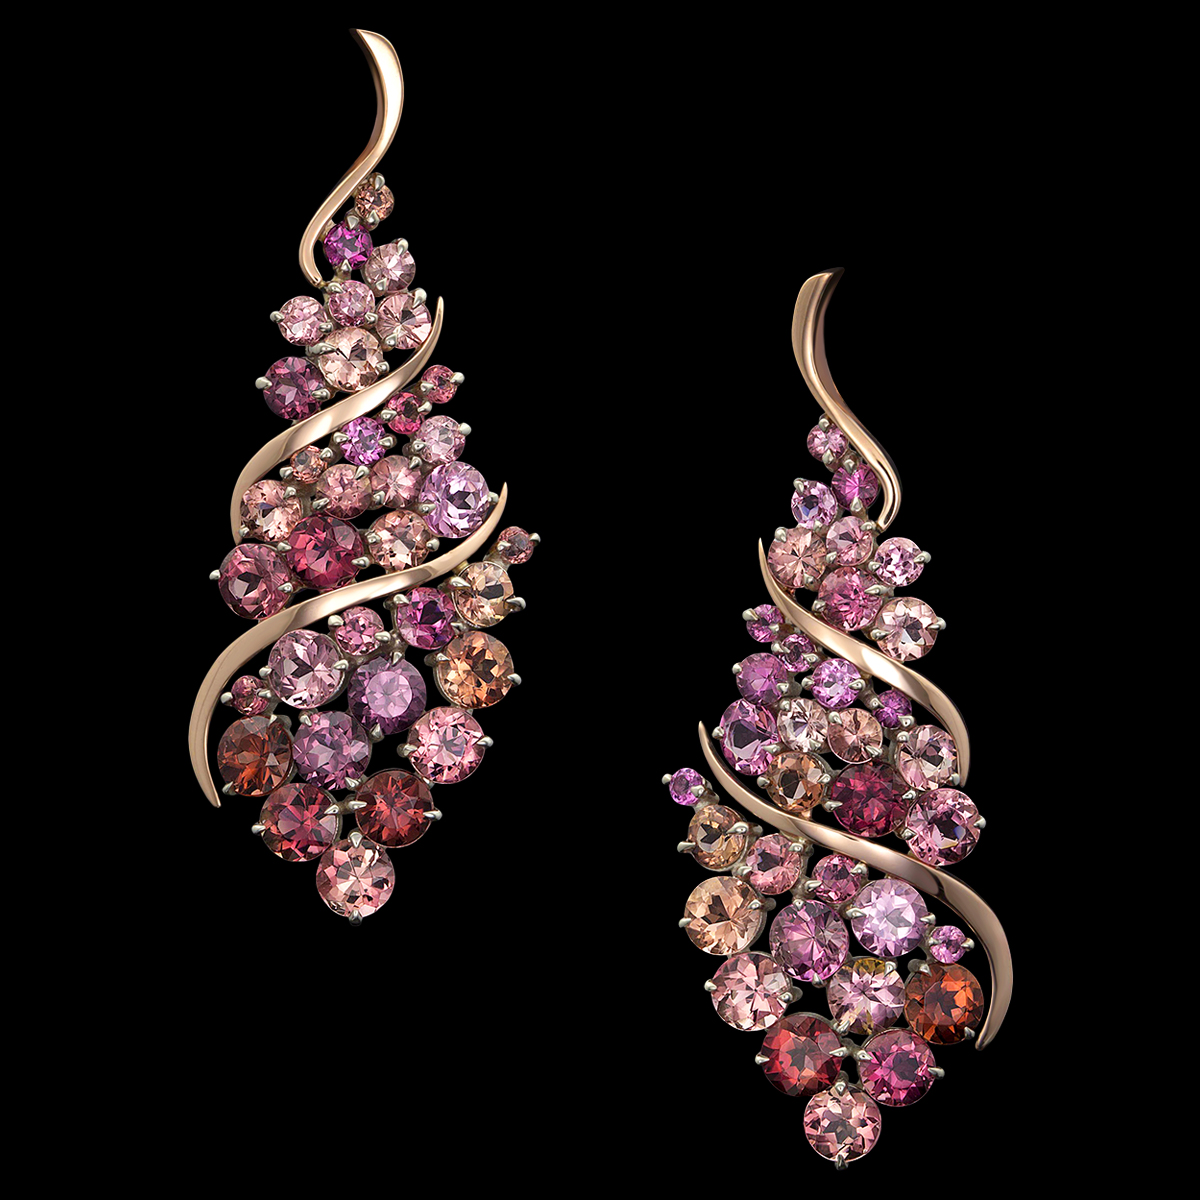 Cuvée Pink Tourmaline Earrings